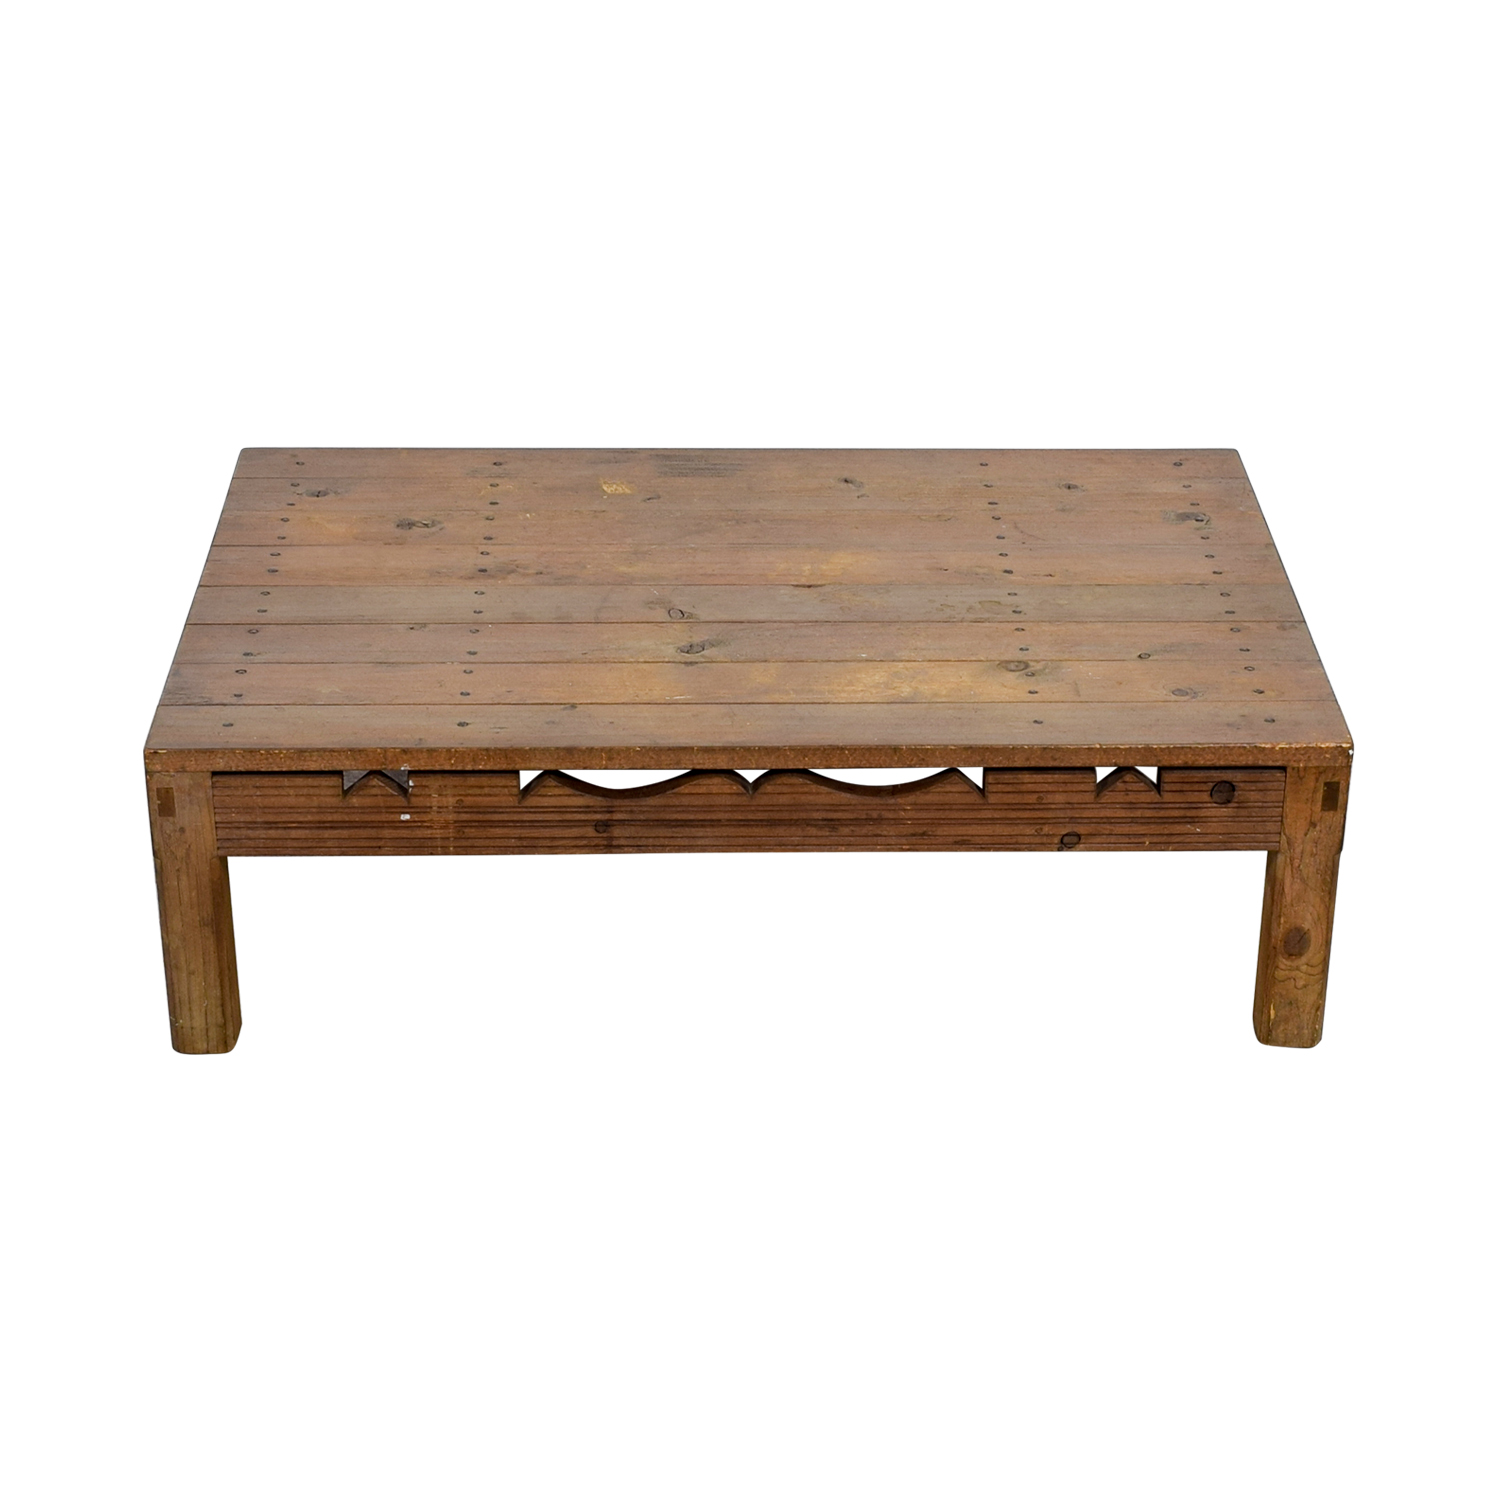 Rustic Coffee Table With Cutouts / Tables